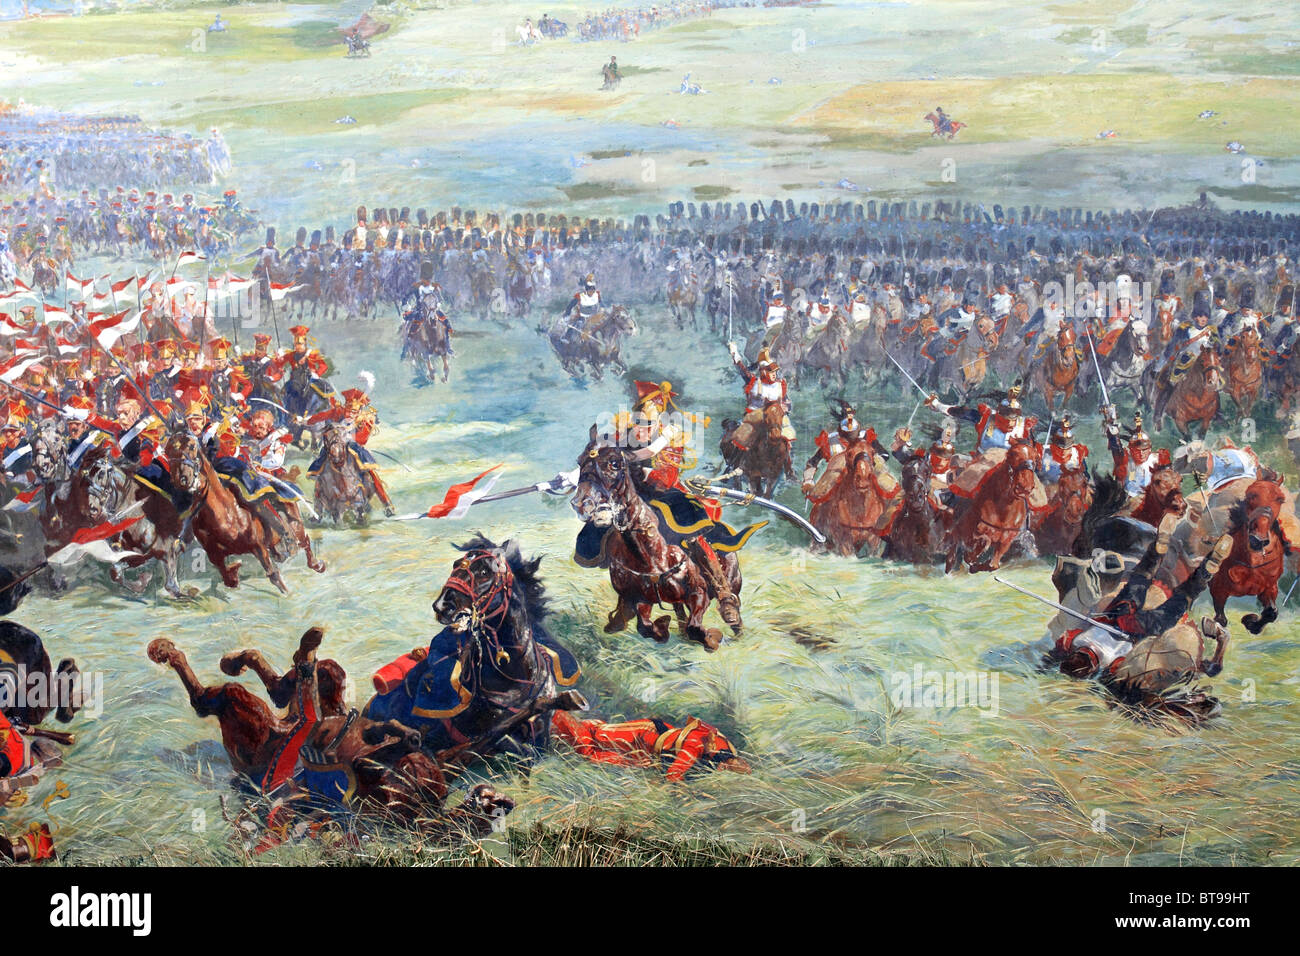 Canvas painted by Louis Dumoulin in 1912 depicting the Battle of Waterloo housed in the Panorama building, Waterloo, - Stock Image